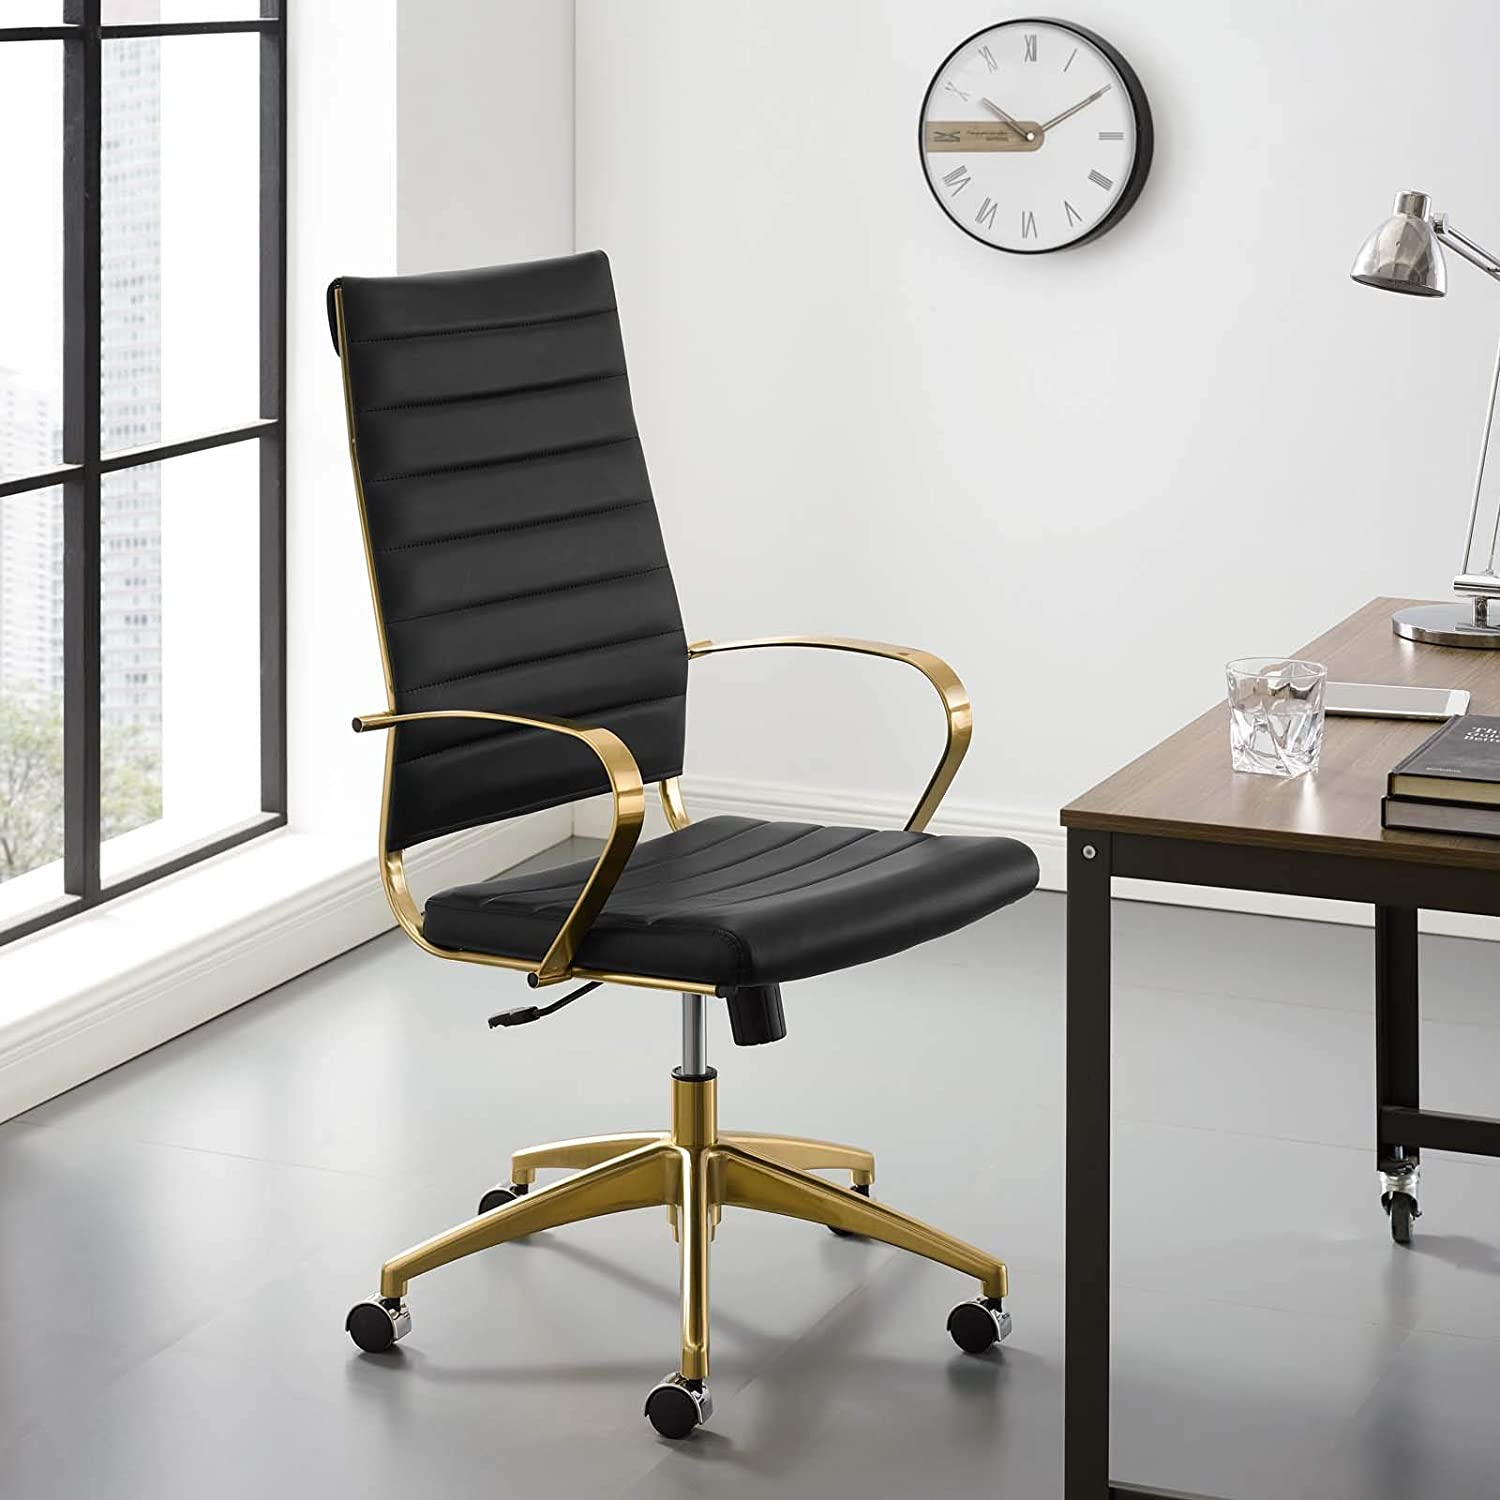 Modway Jive Gold Stainless Steel Executive Managerial Tall Swivel Highback Office Chair